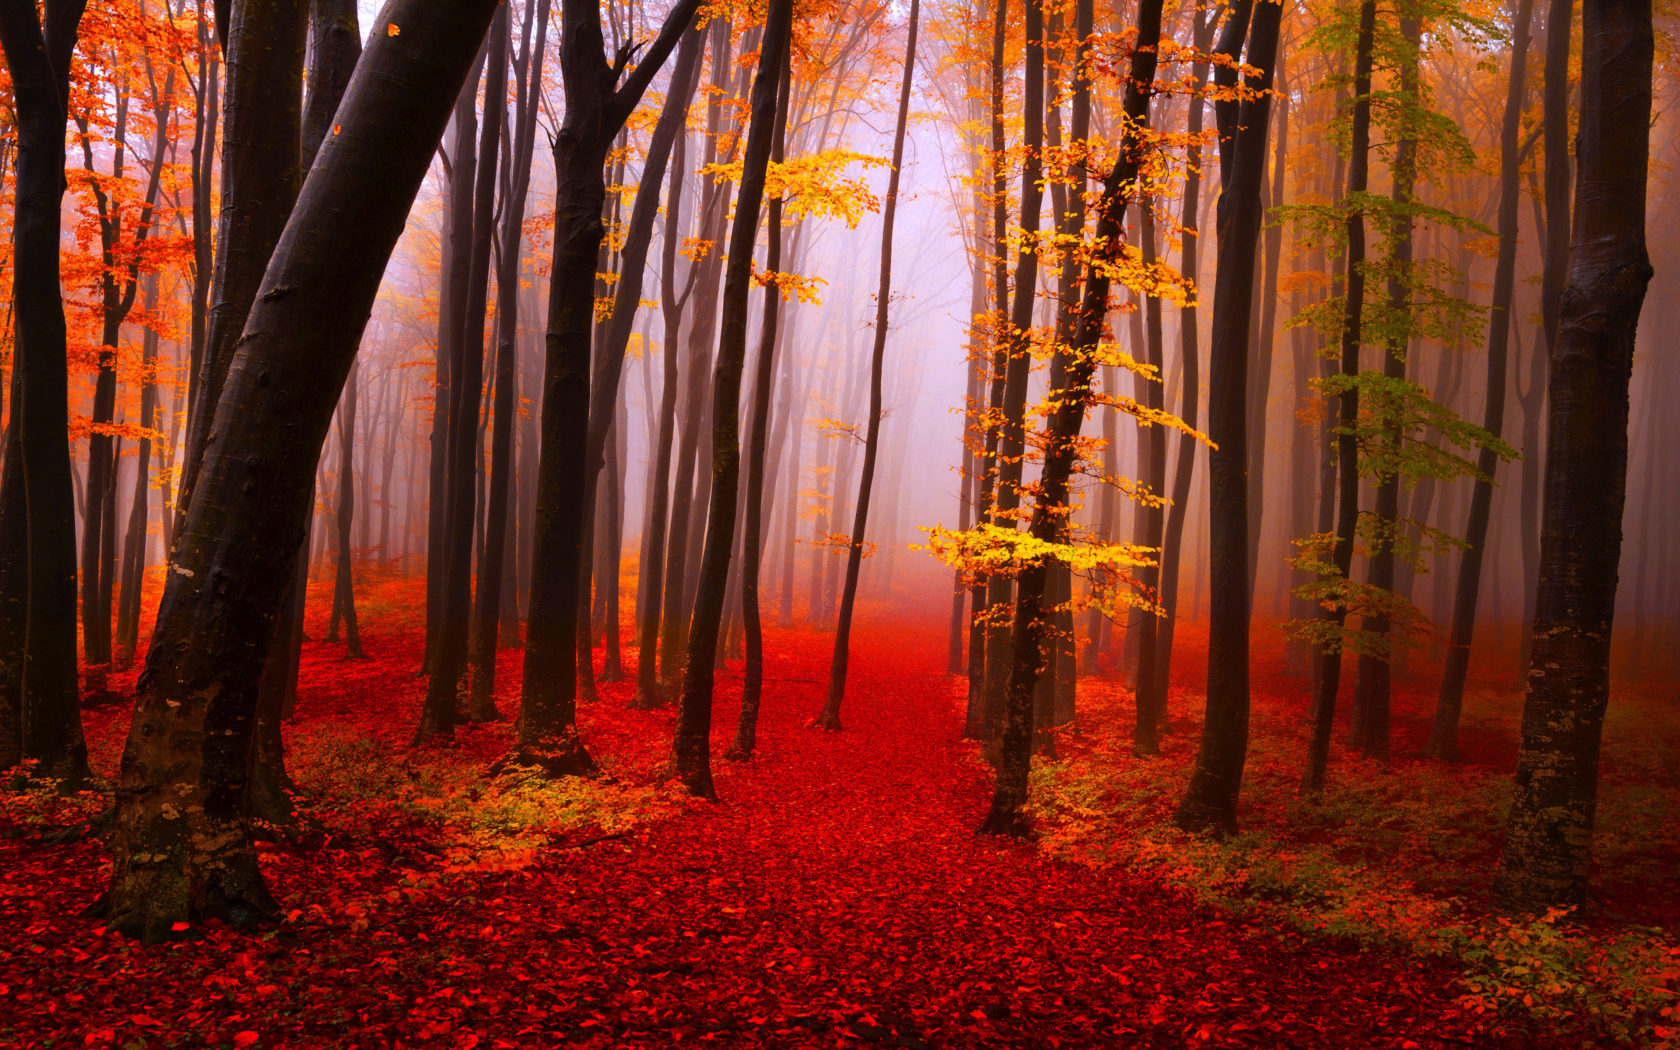 Iphone Wallpaper Fall Leaves Autumn Forest Path Trees Fog Fall Yellow And Red Leaves